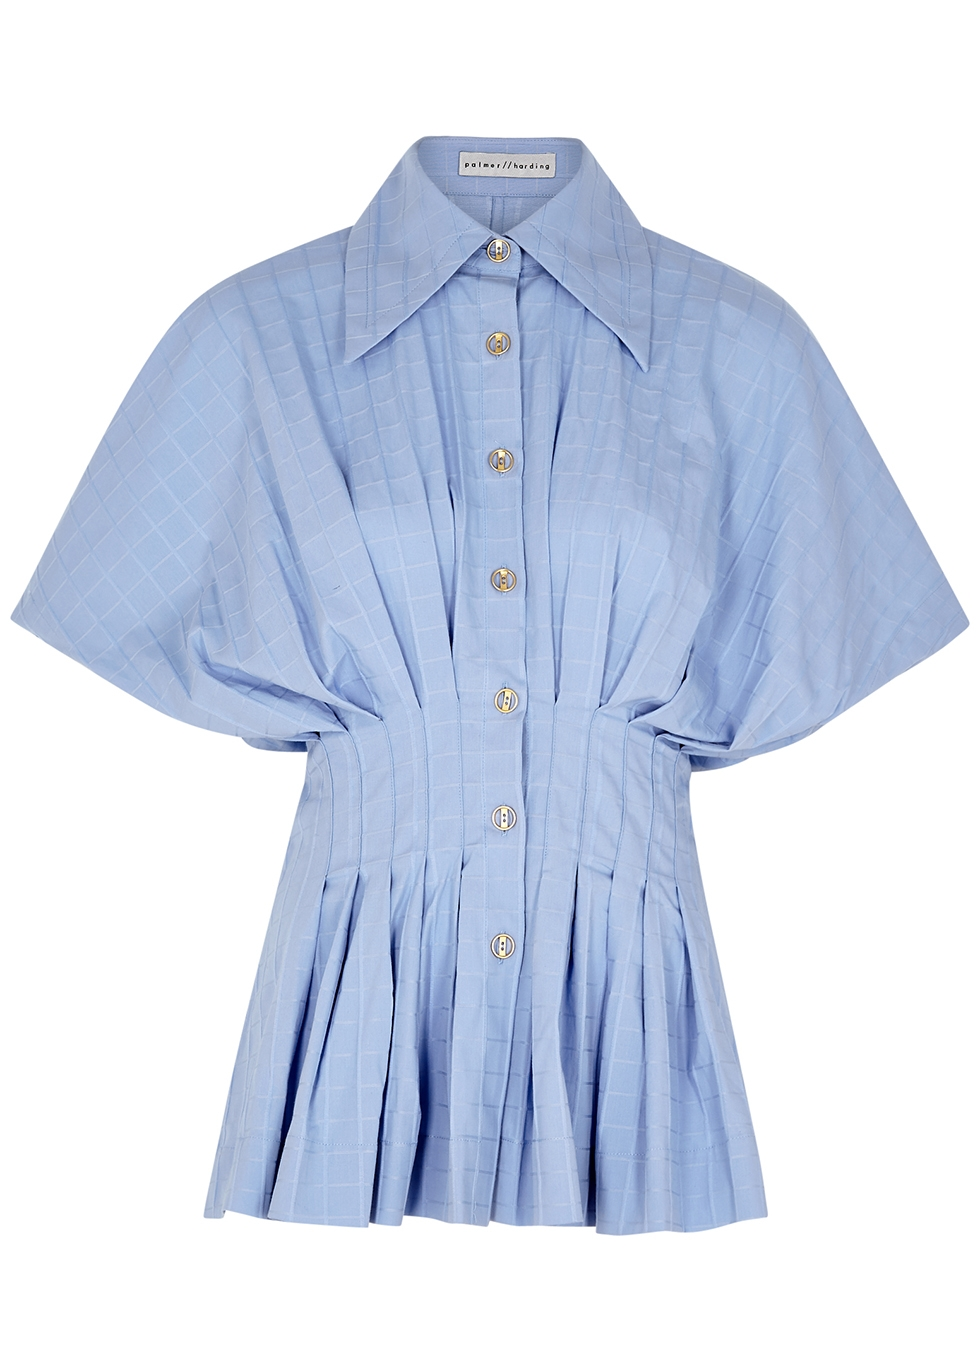 Courageous Heart blue checked stretch-cotton top